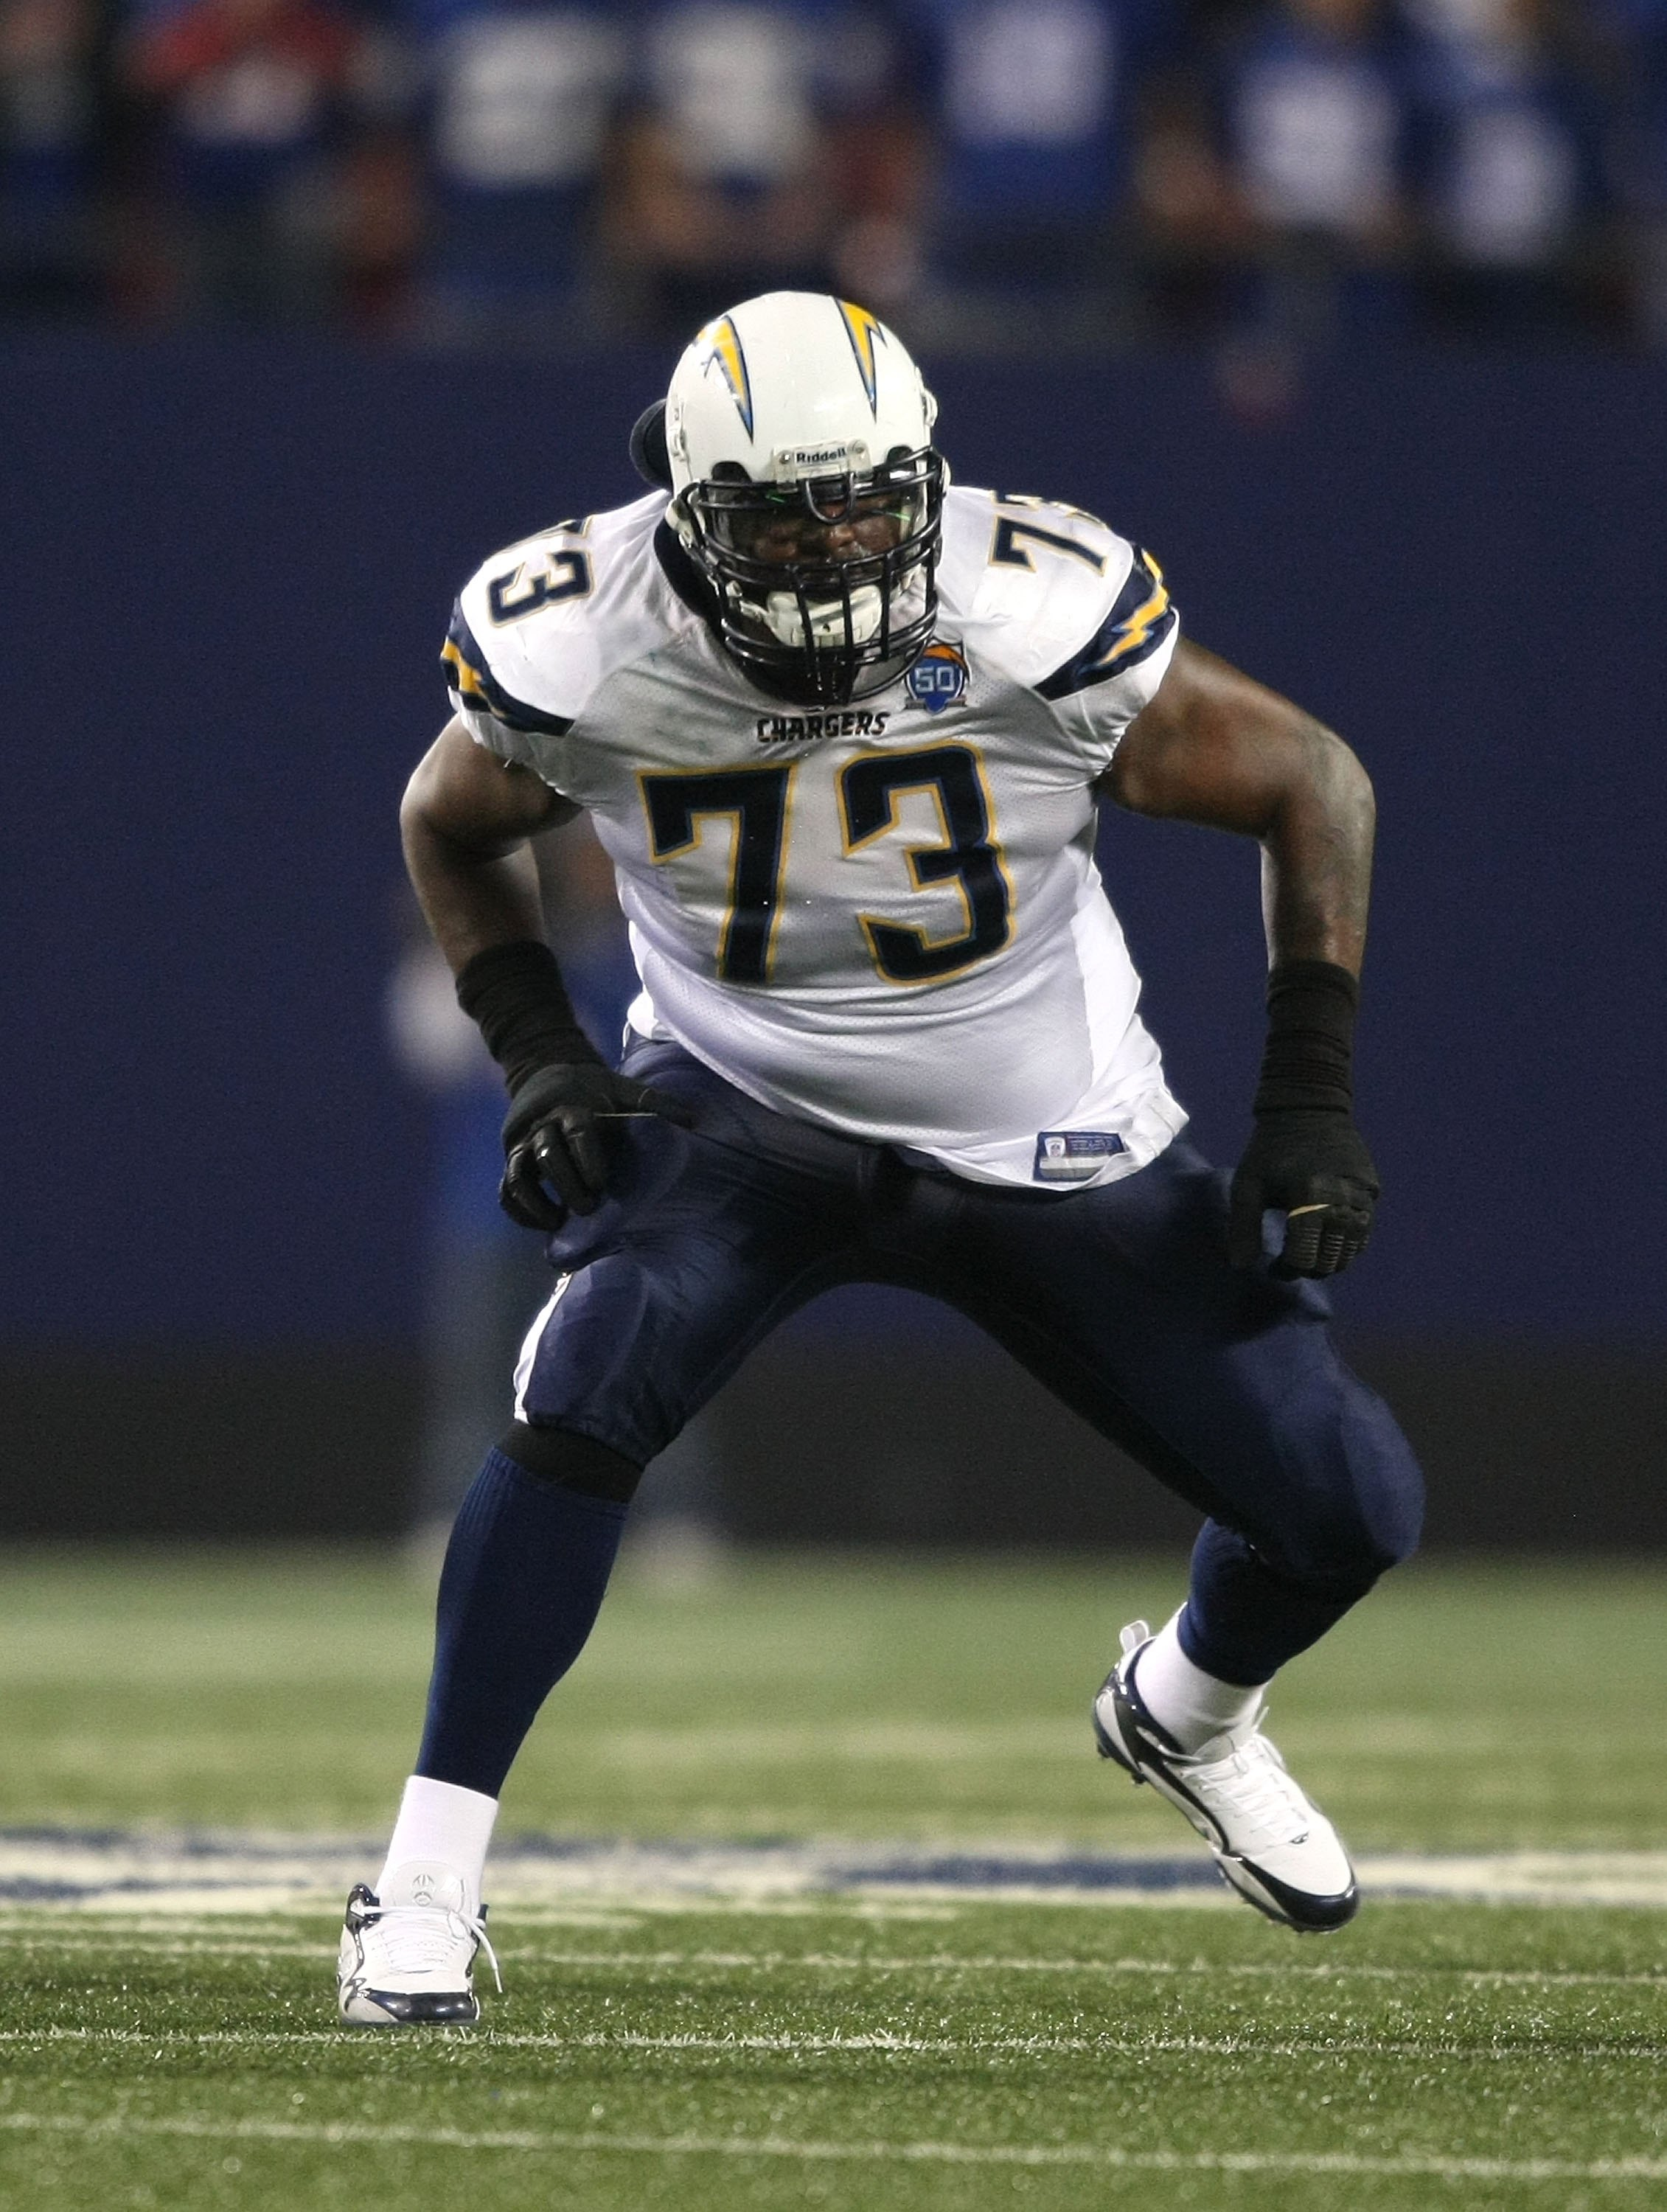 EAST RUTHERFORD, NJ - NOVEMBER 8:  Marcus McNeill #73 of the San Diego Chargers against the New York Giants at Giants Stadium on November 8, 2009 in East Rutherford, New Jersey. The Chargers defeated the Giants 21-20.  (Photo by Nick Laham/Getty Images)